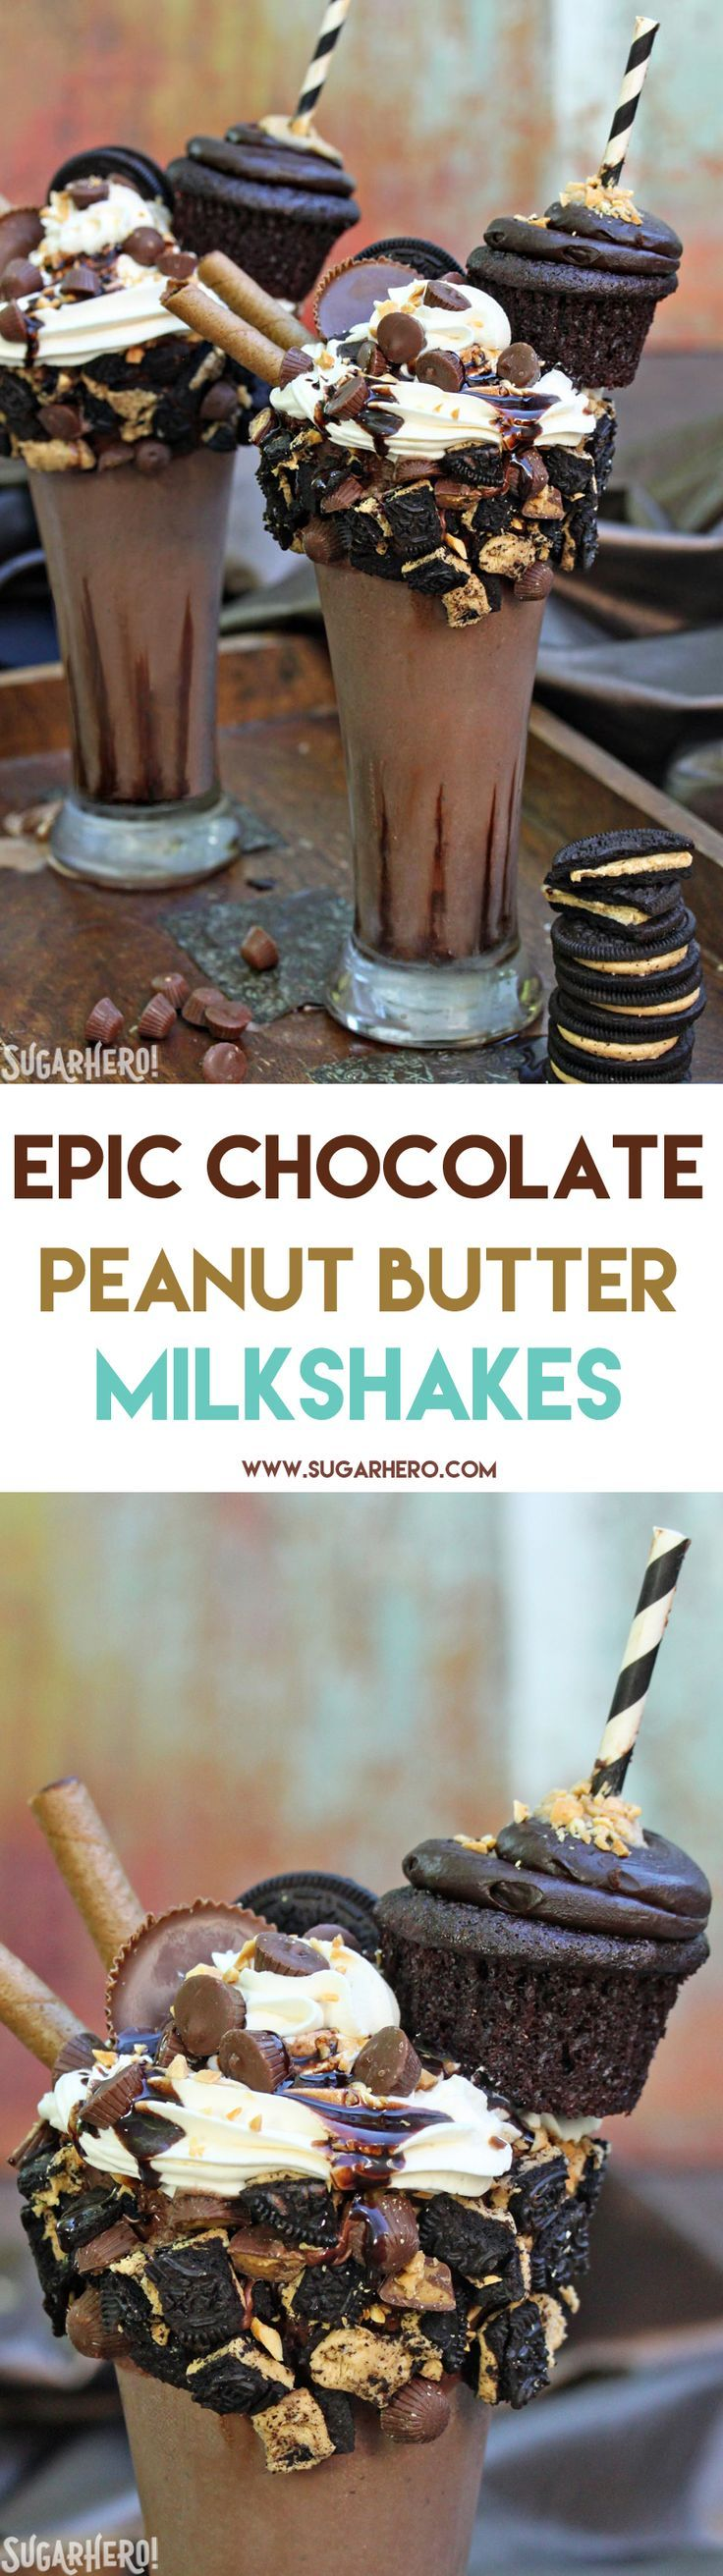 Epic Chocolate Peanut Butter Milkshakes - rich and creamy shakes that will blow your mind! Topped with cookies, candy, whipped cream, and even a whole cupcake! | From SugarHero.com